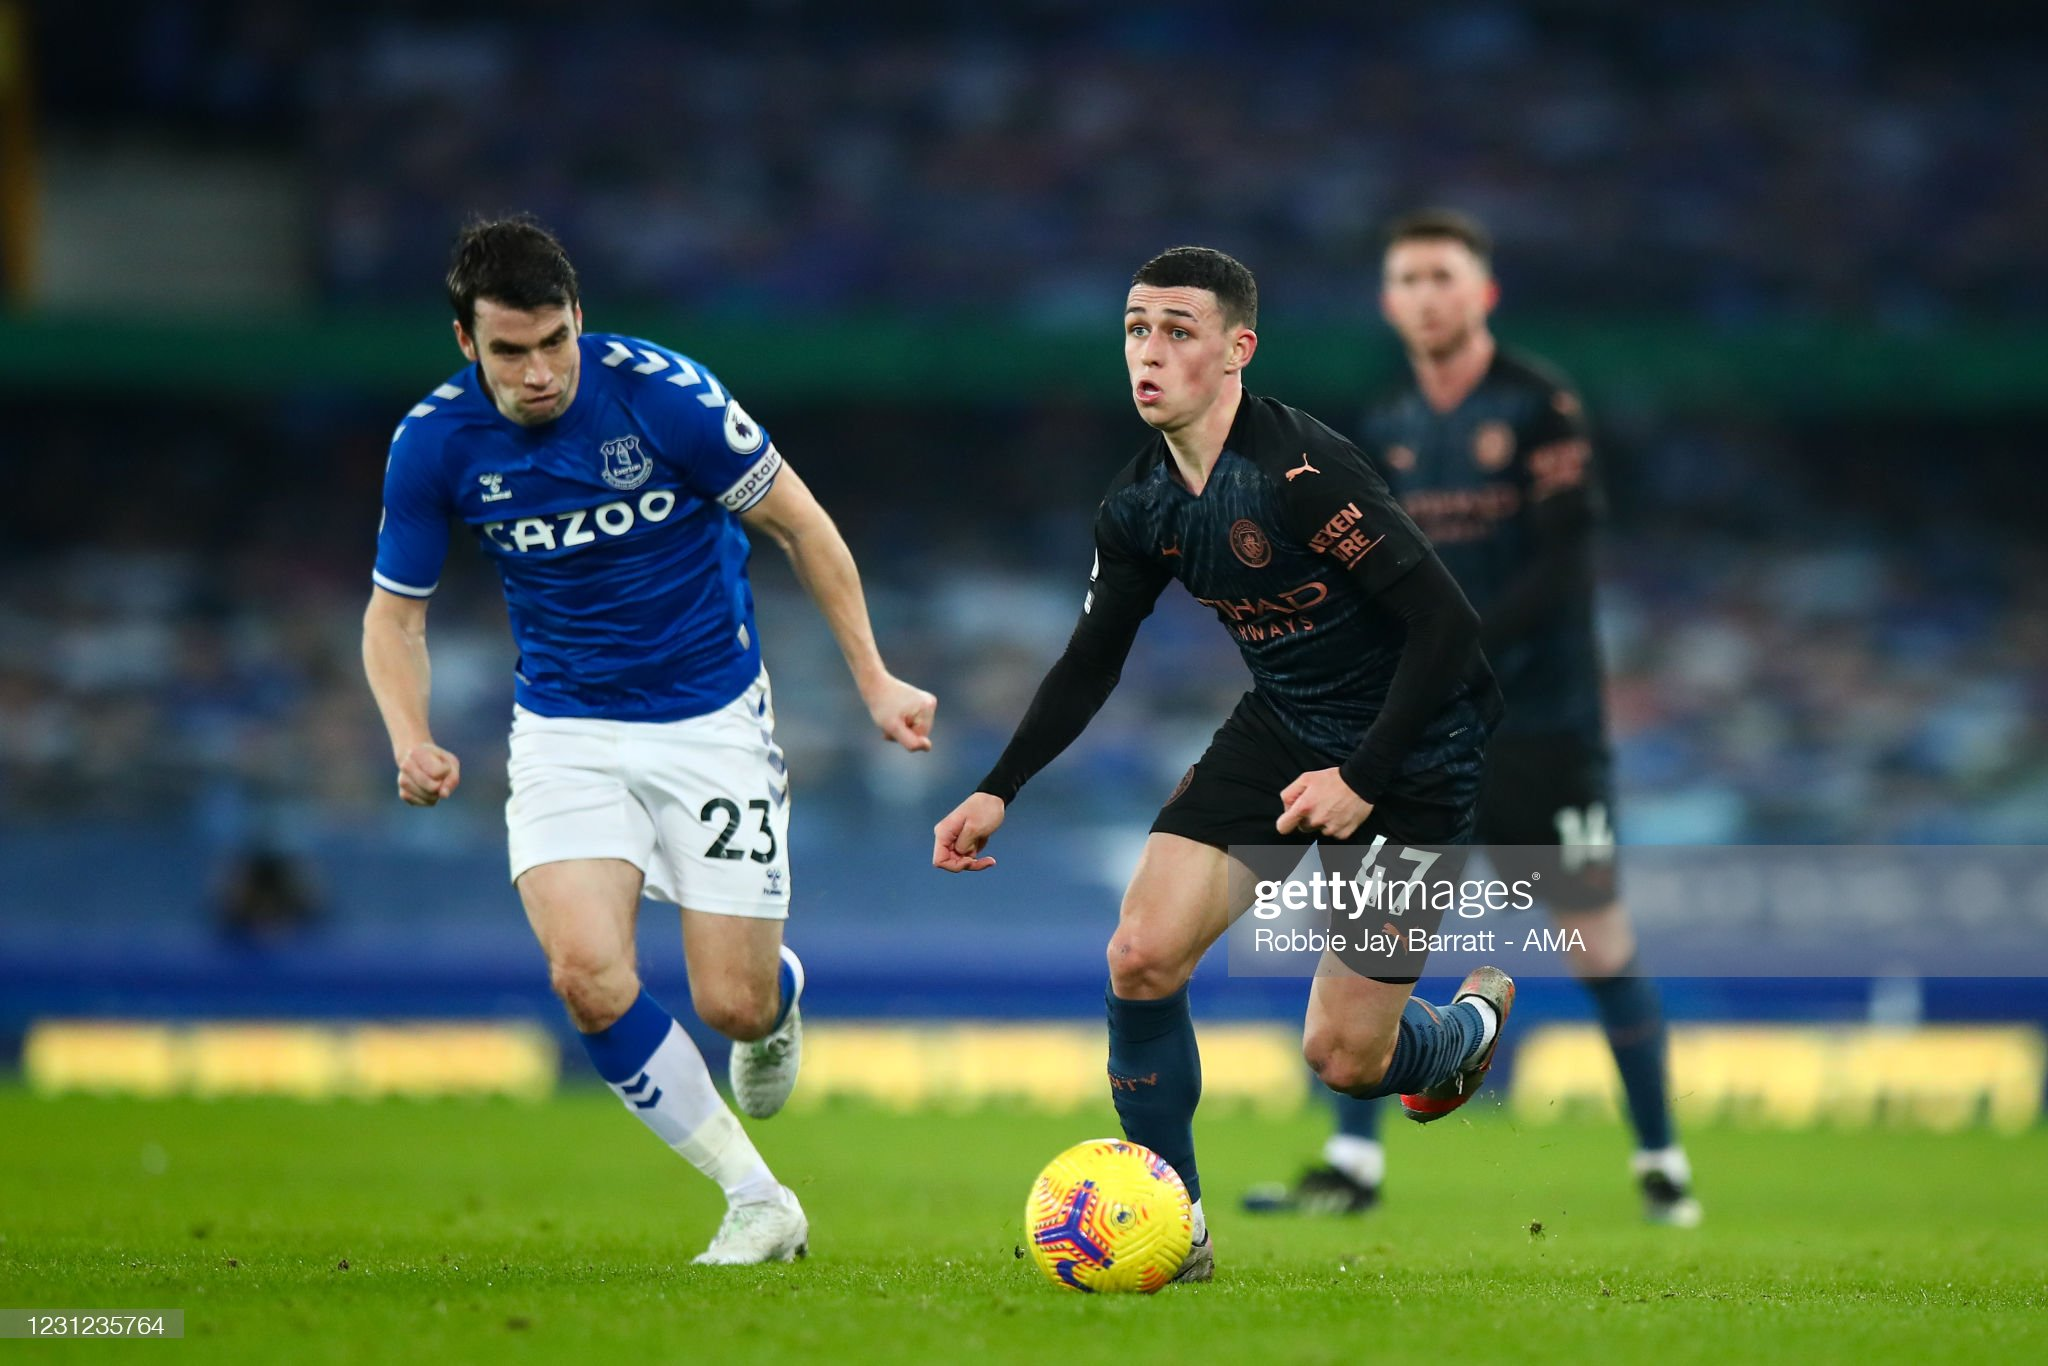 Everton vs Manchester City preview, prediction and odds